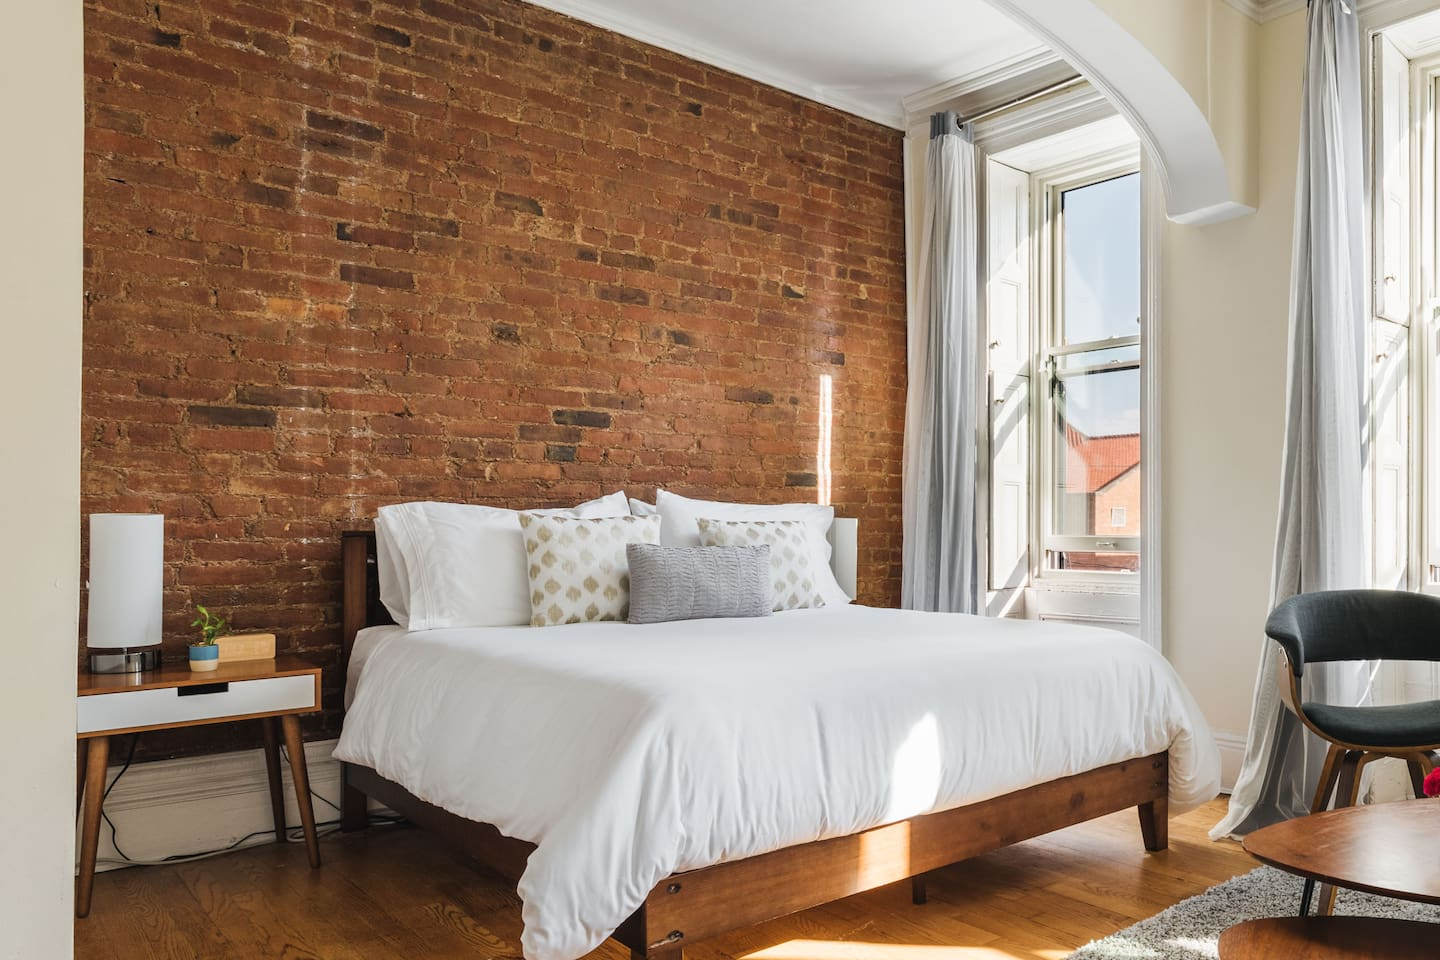 Master bedroom with exposed brickwork